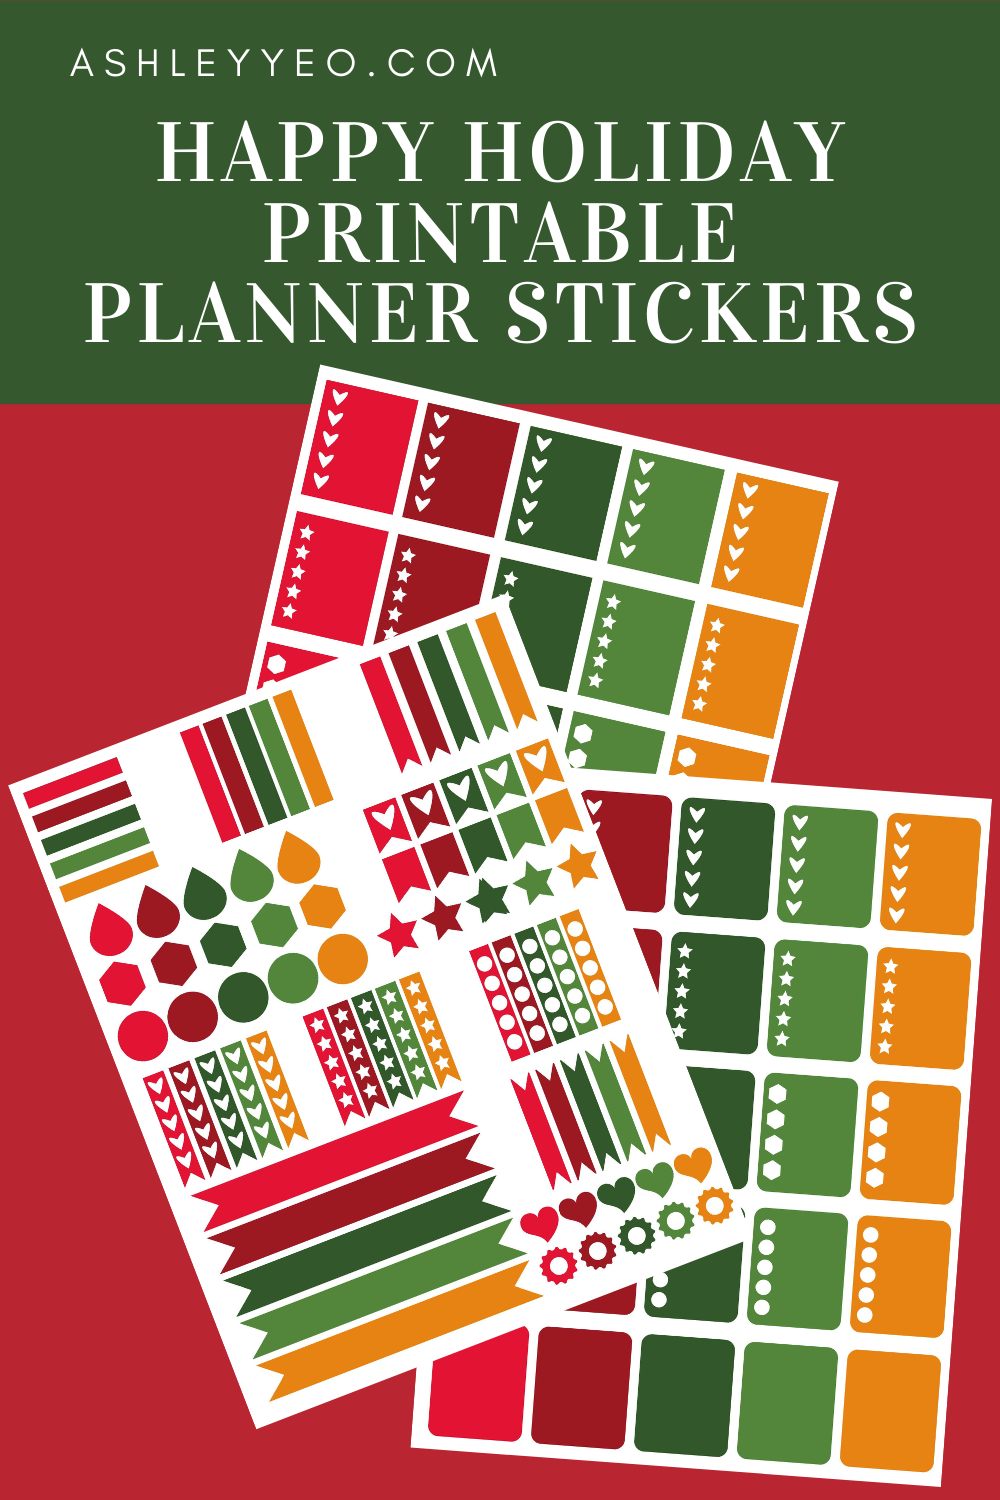 Happy Holiday Printable Planner Stickers